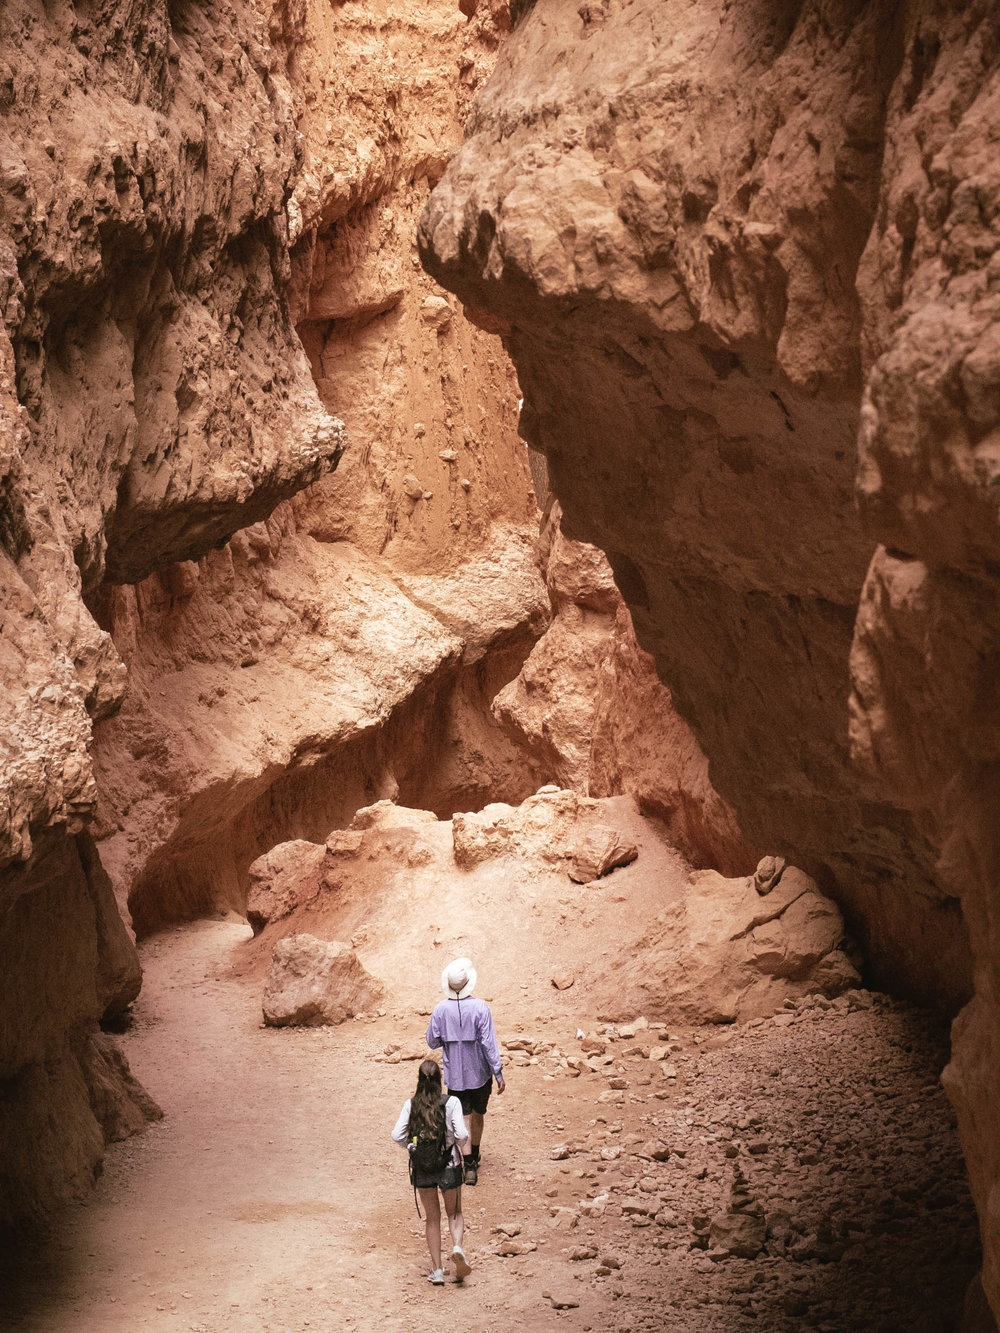 Hiking the Navajo Loop trail in Bryce Canyon National Park